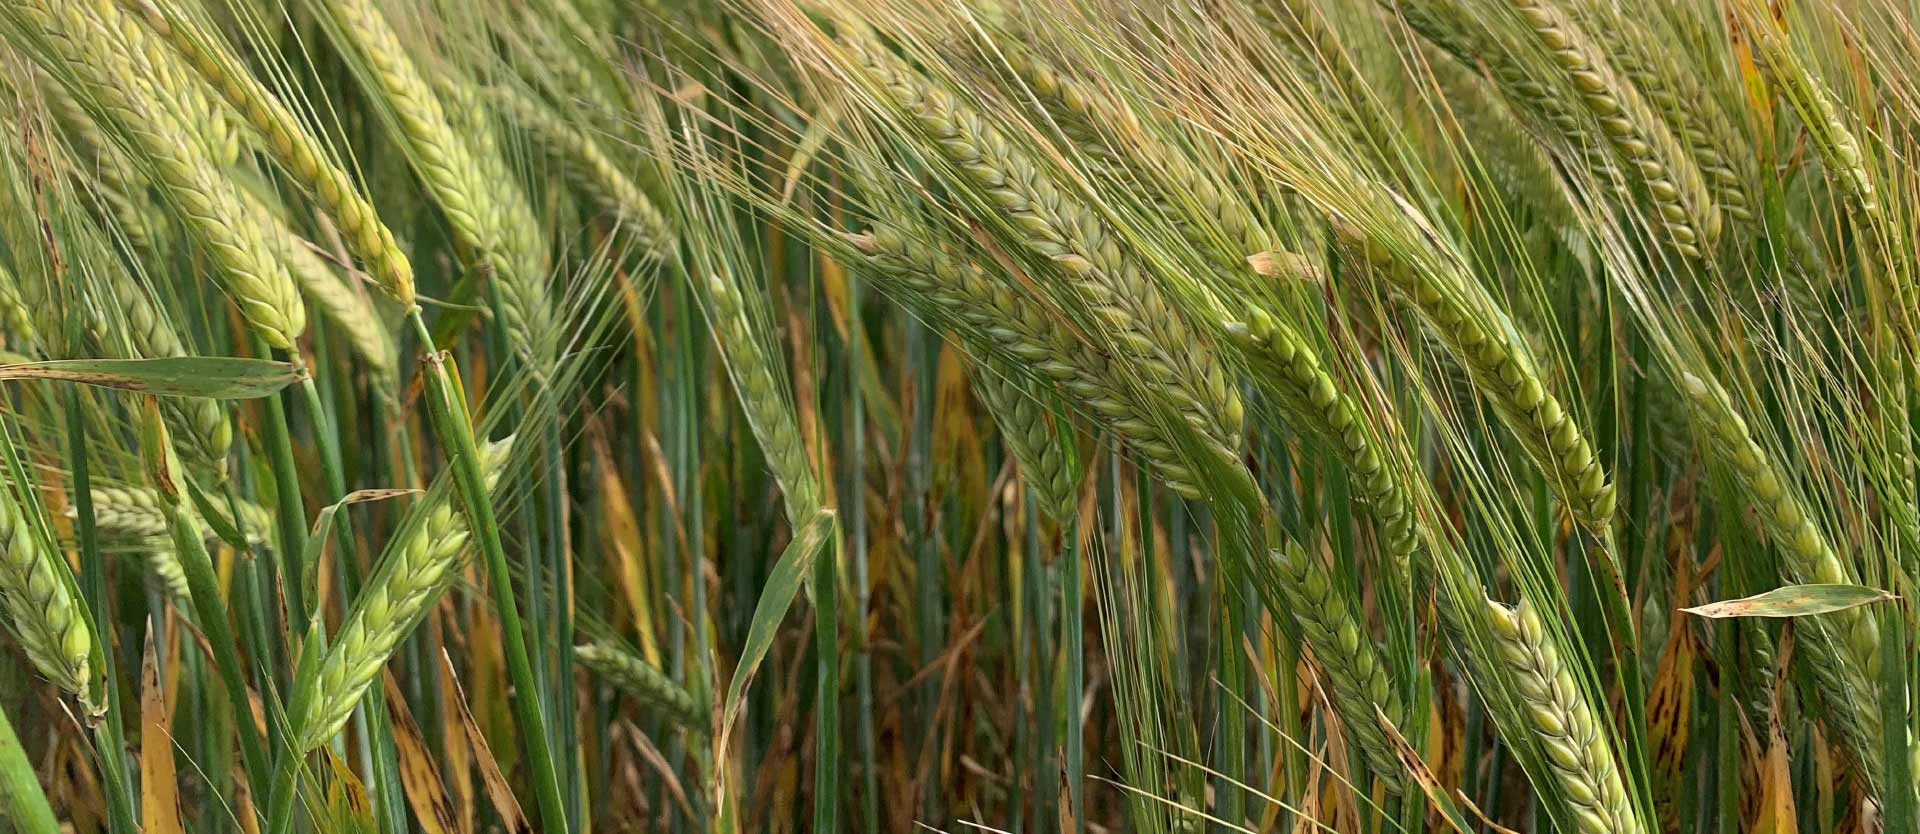 Update on Malting Barley Evaluations